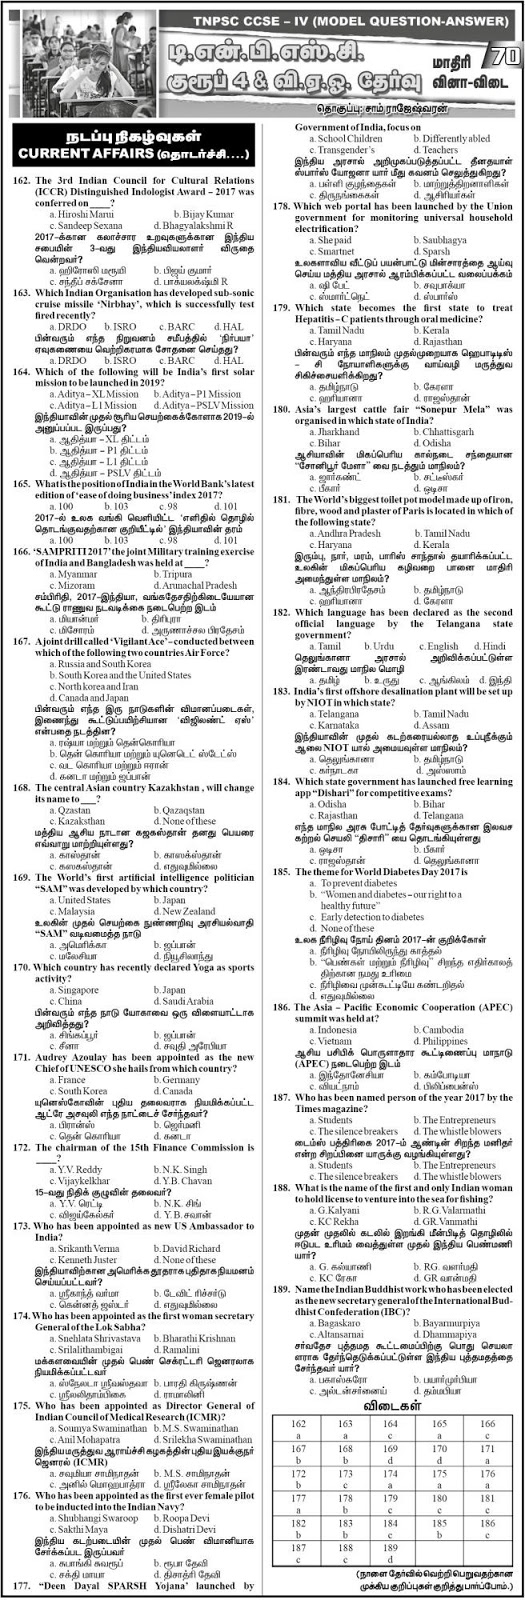 TNPSC Group 4 Current Affairs Model Papers - Dinathanthi Feb 6, 2018, Download as PDF